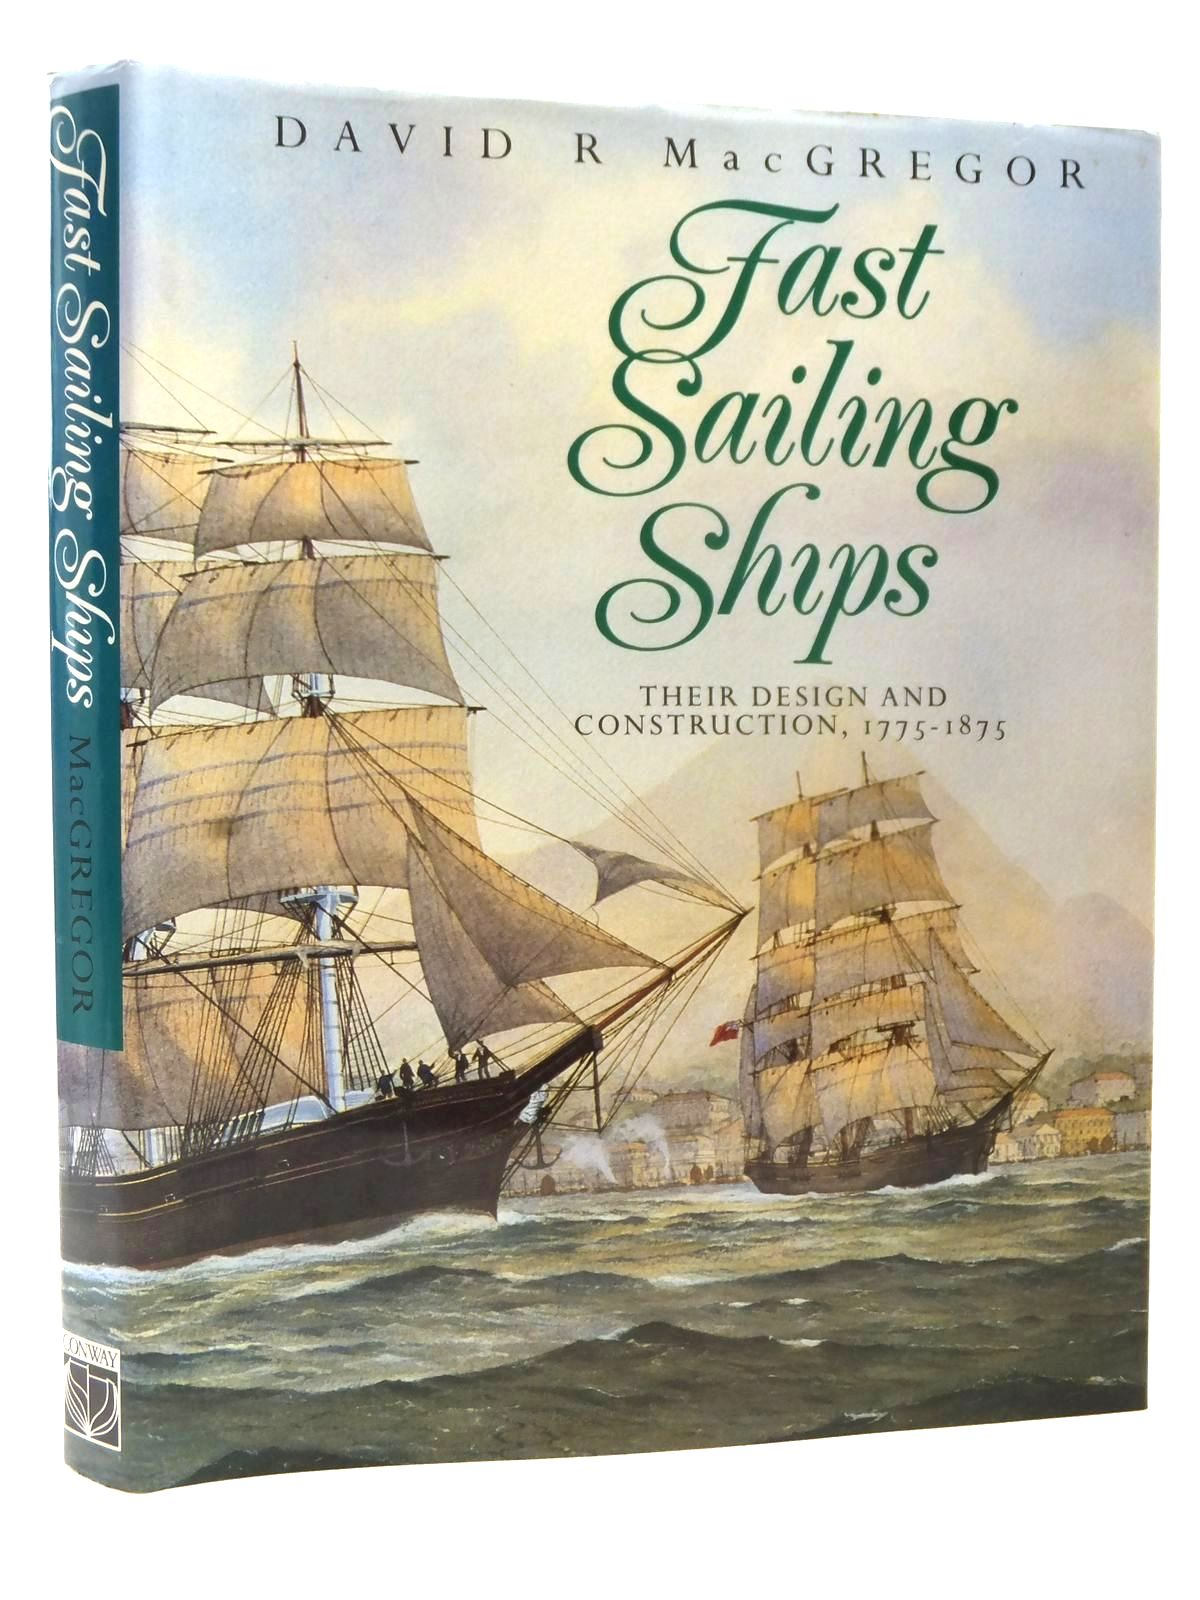 Rare Books Collectible 2nd Hand Sailing Stella Ship Diagram Tall Ships Pinterest 3200 Photo Of Book Fast